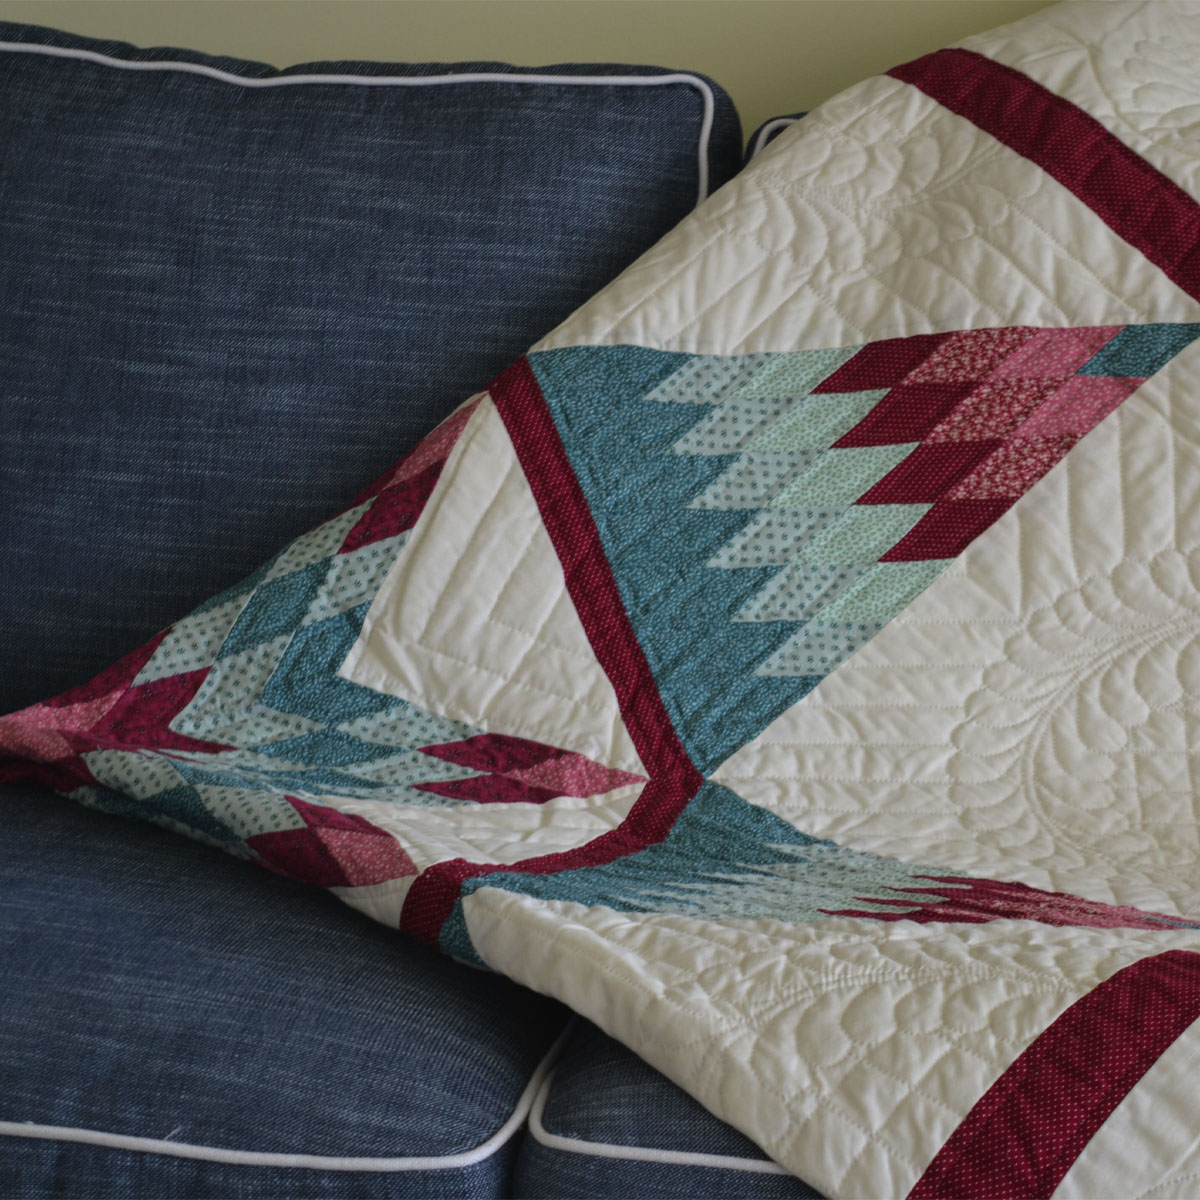 Hand Stitched Amish Quilt - An anonymous donor has generously provided this gorgeous quilt, hand crafted in the 1970s by an Amish woman and her daughters in Lancaster County, Pa. Everything is hand stitched in this classic display of Amish craftsmanship.Retail Value: $500.00